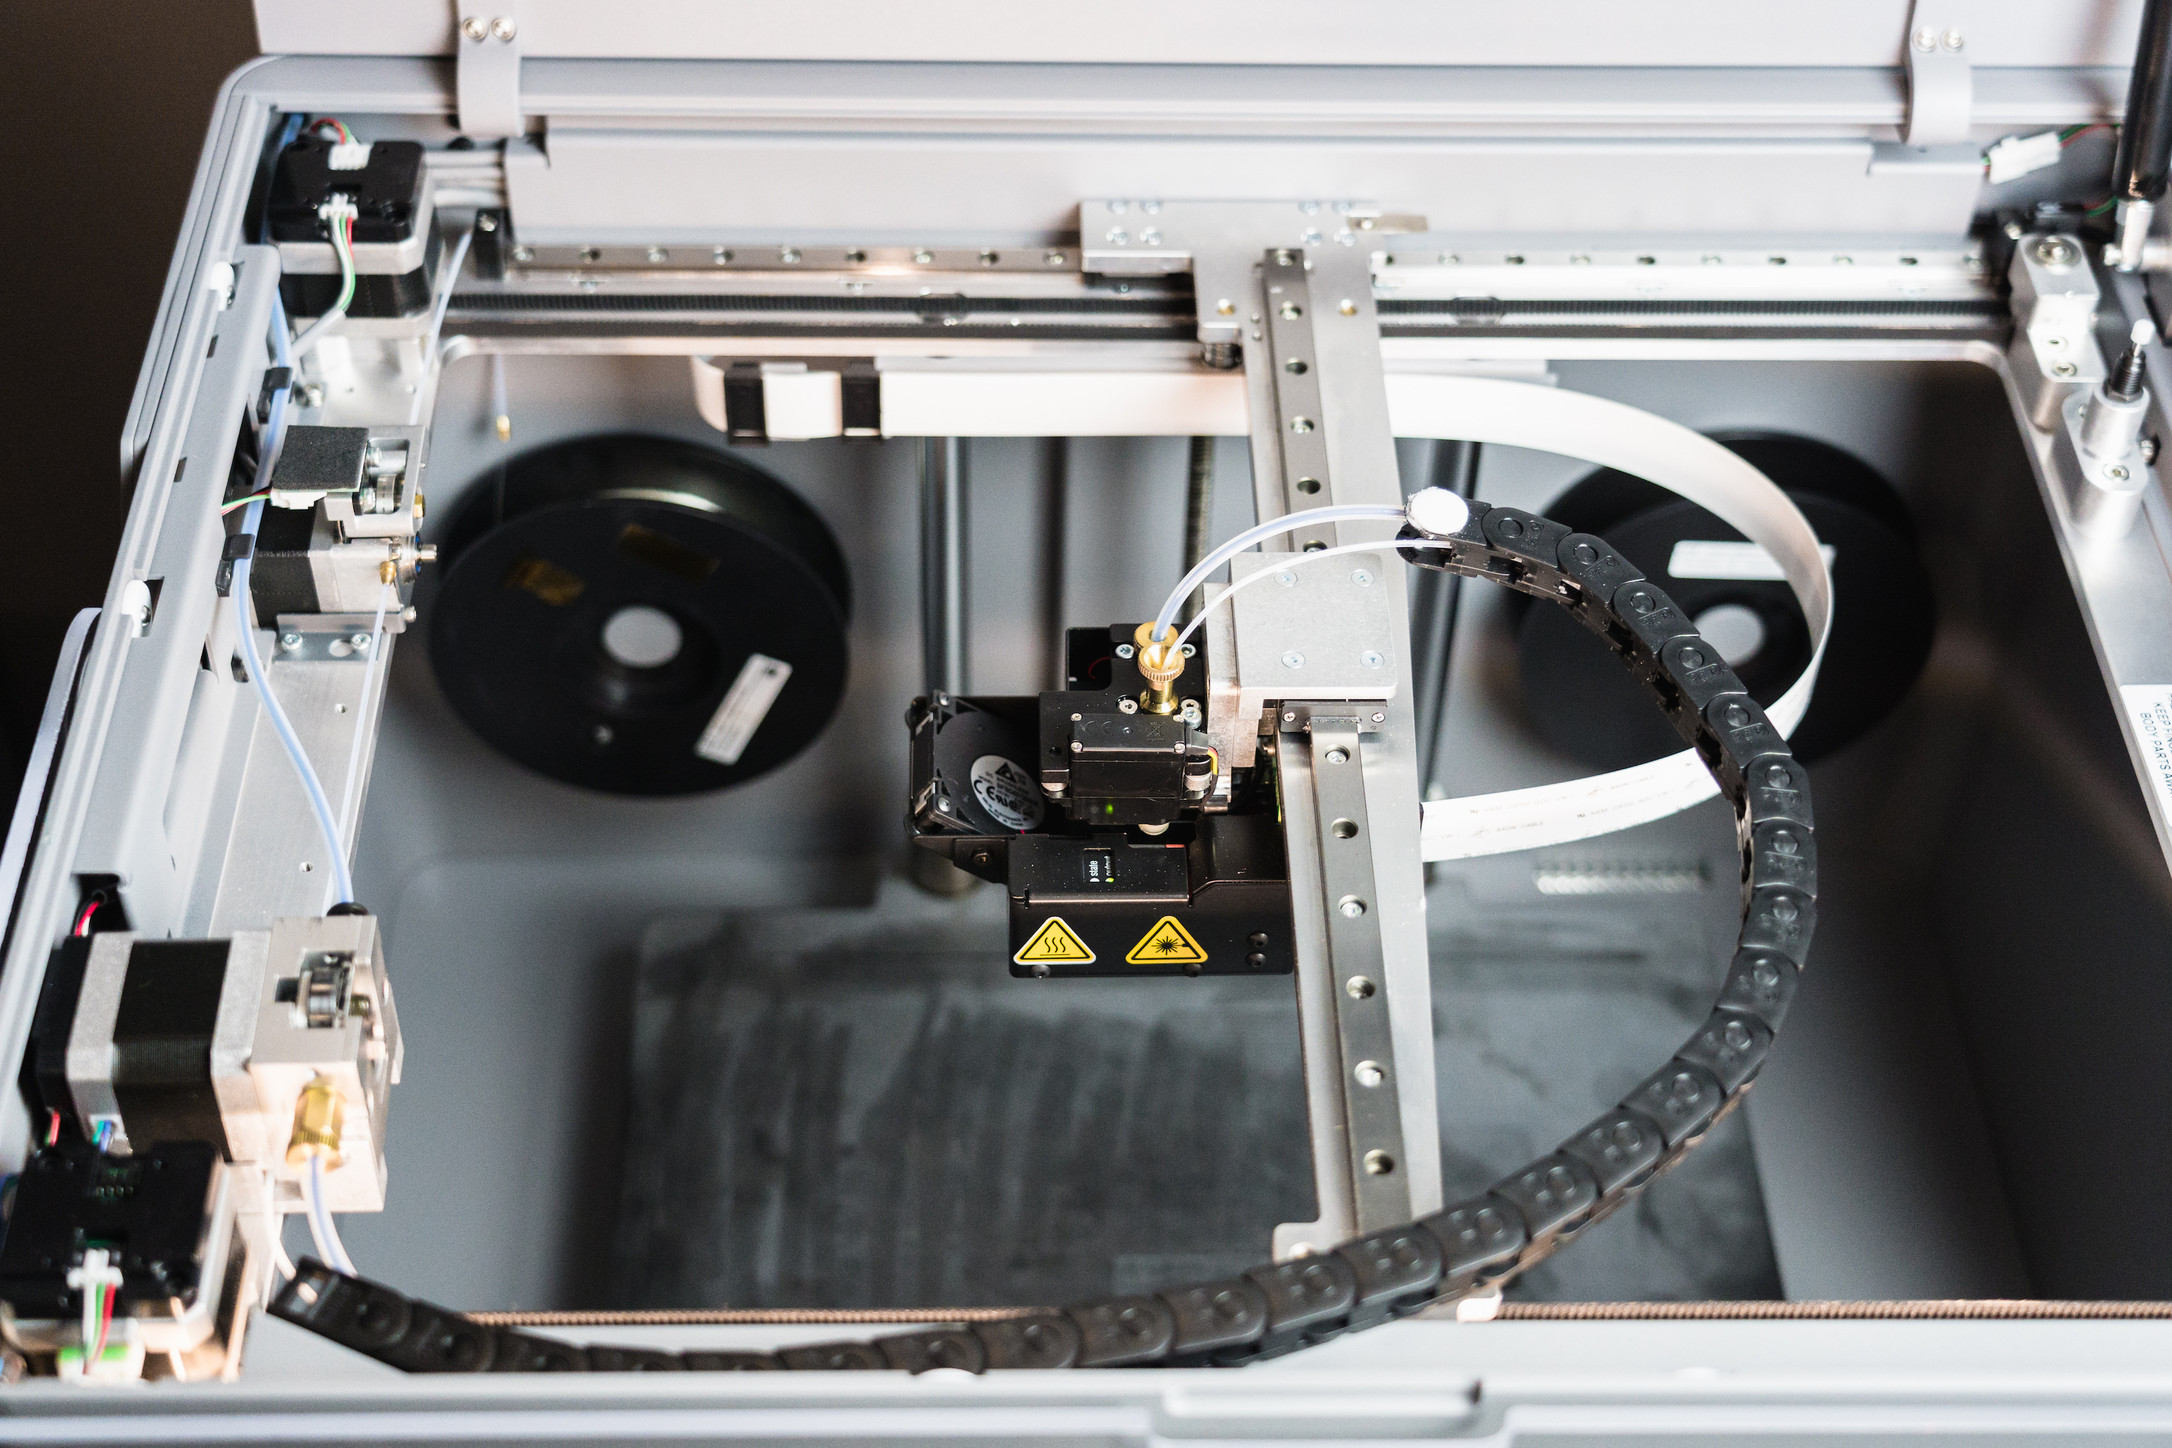 Upgrading from Makerbot to Professional: Why Not all